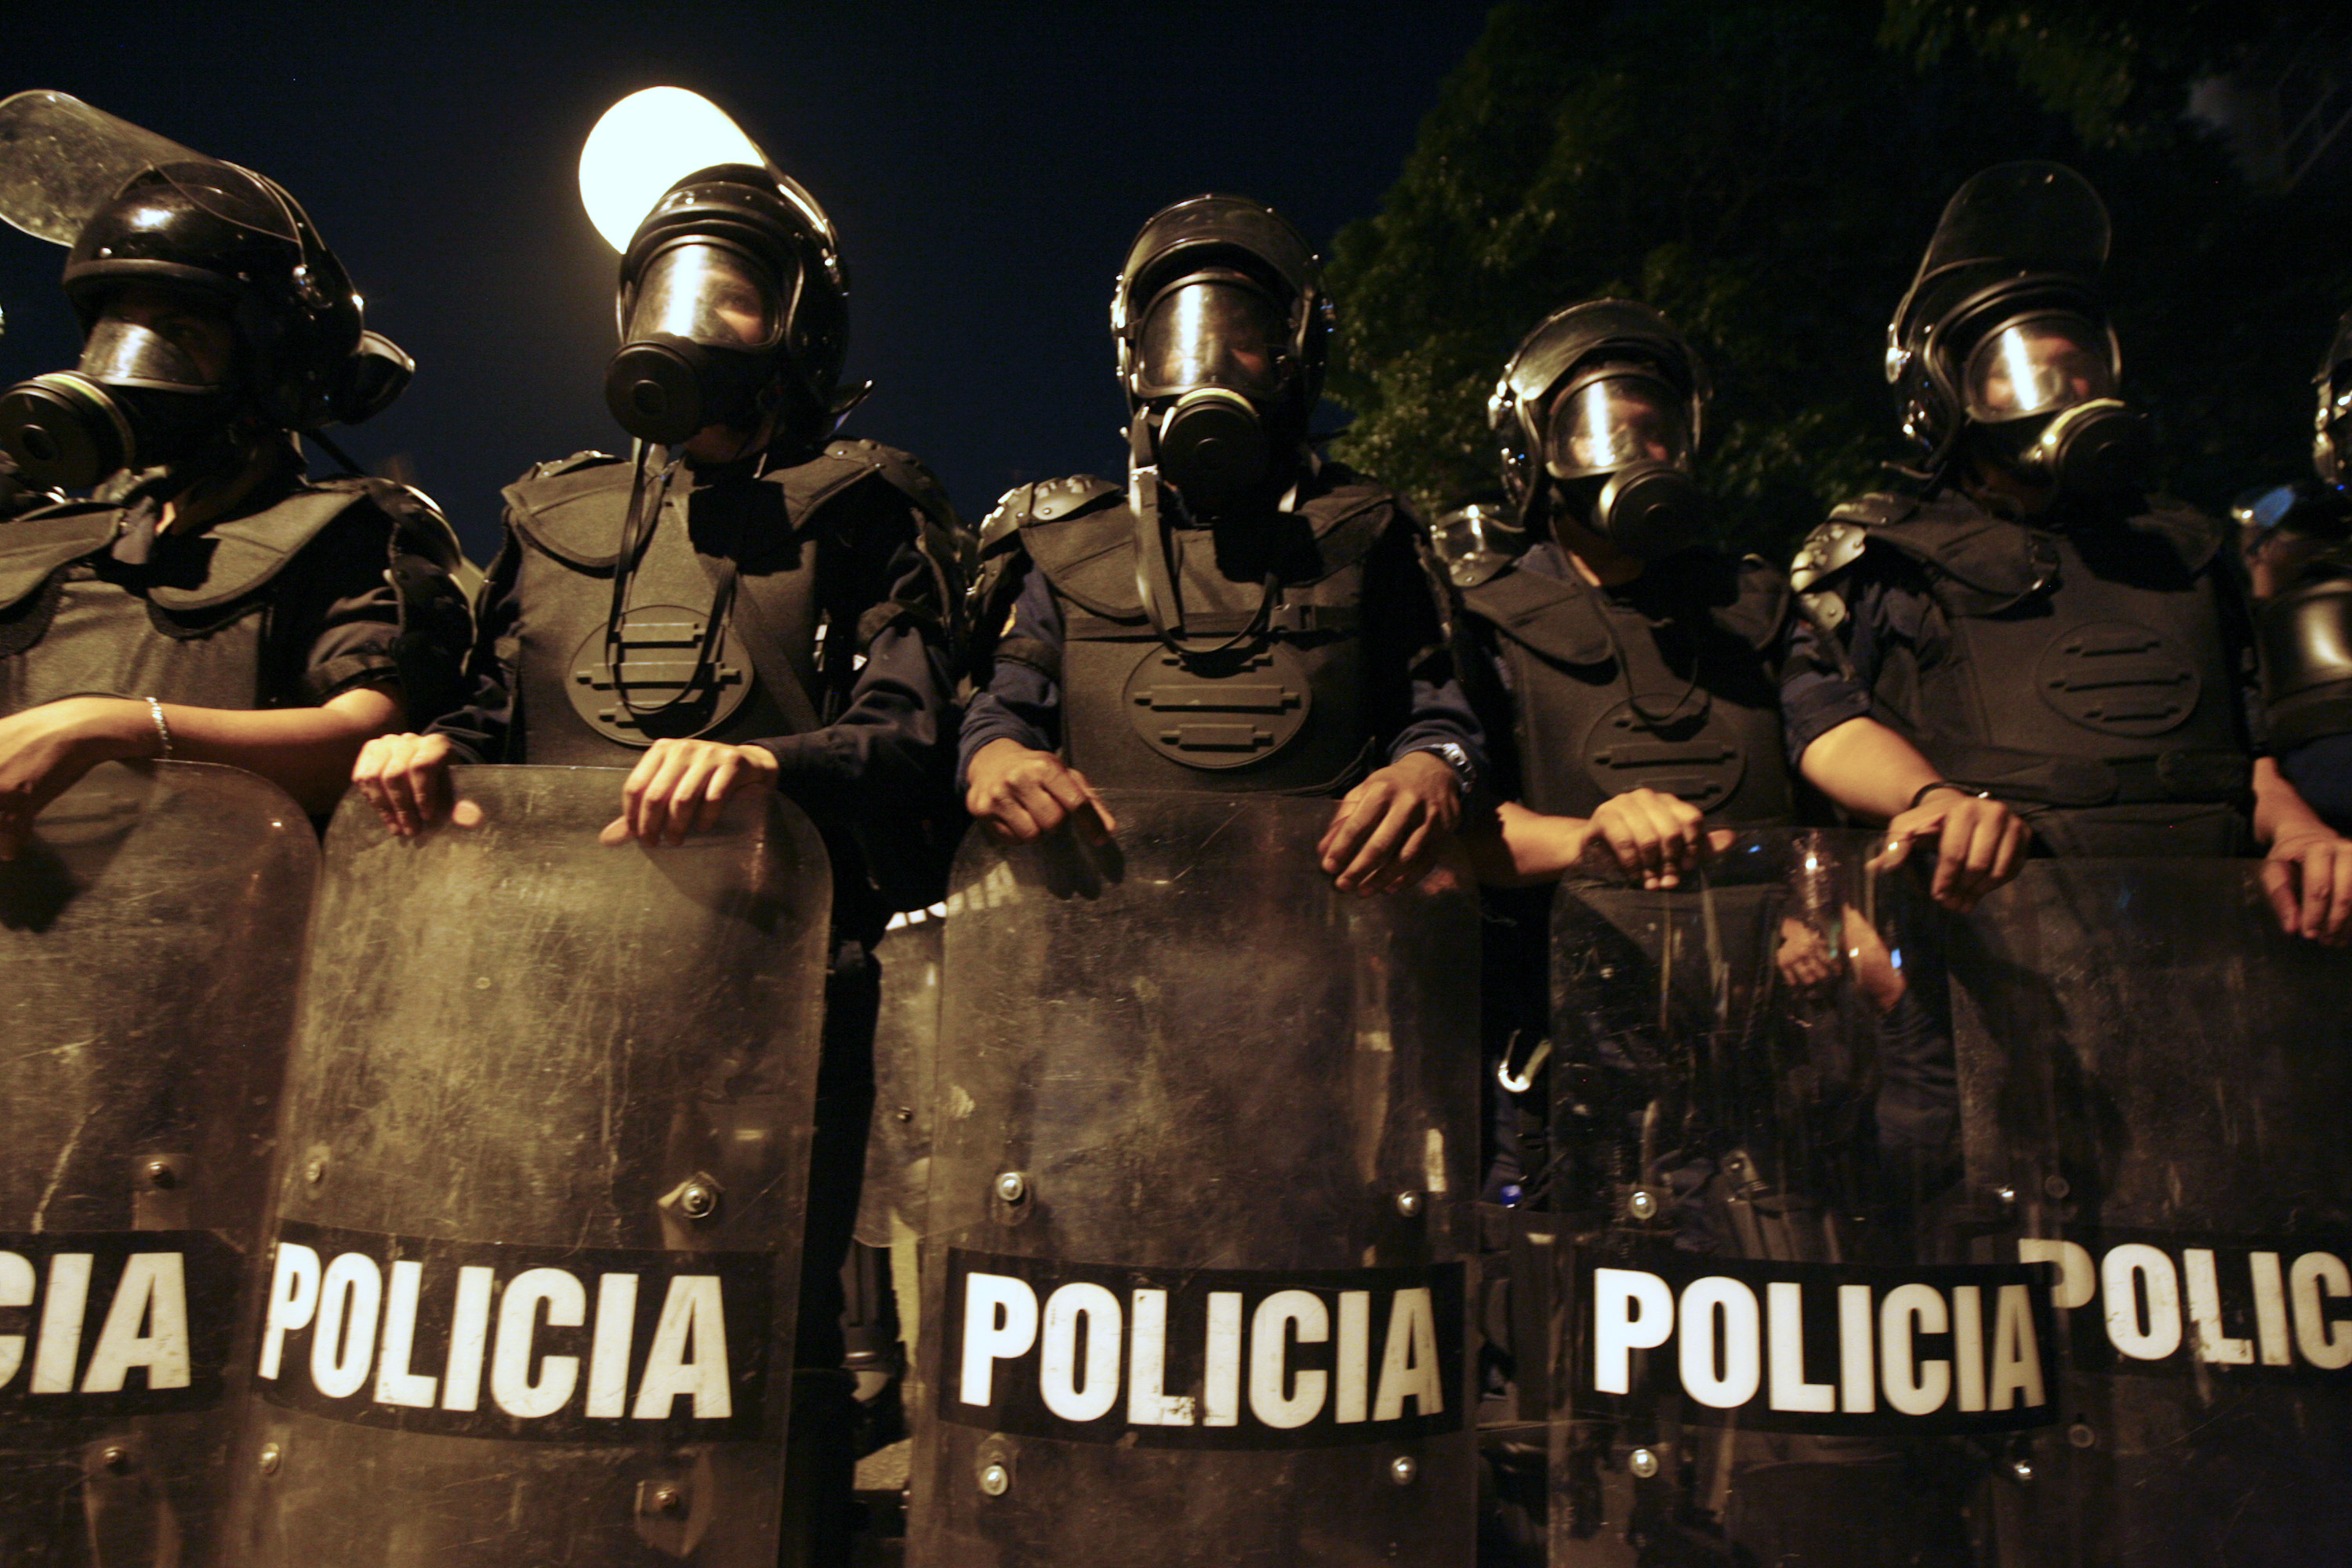 Venezuelan policemen wearing anti-riot gear.